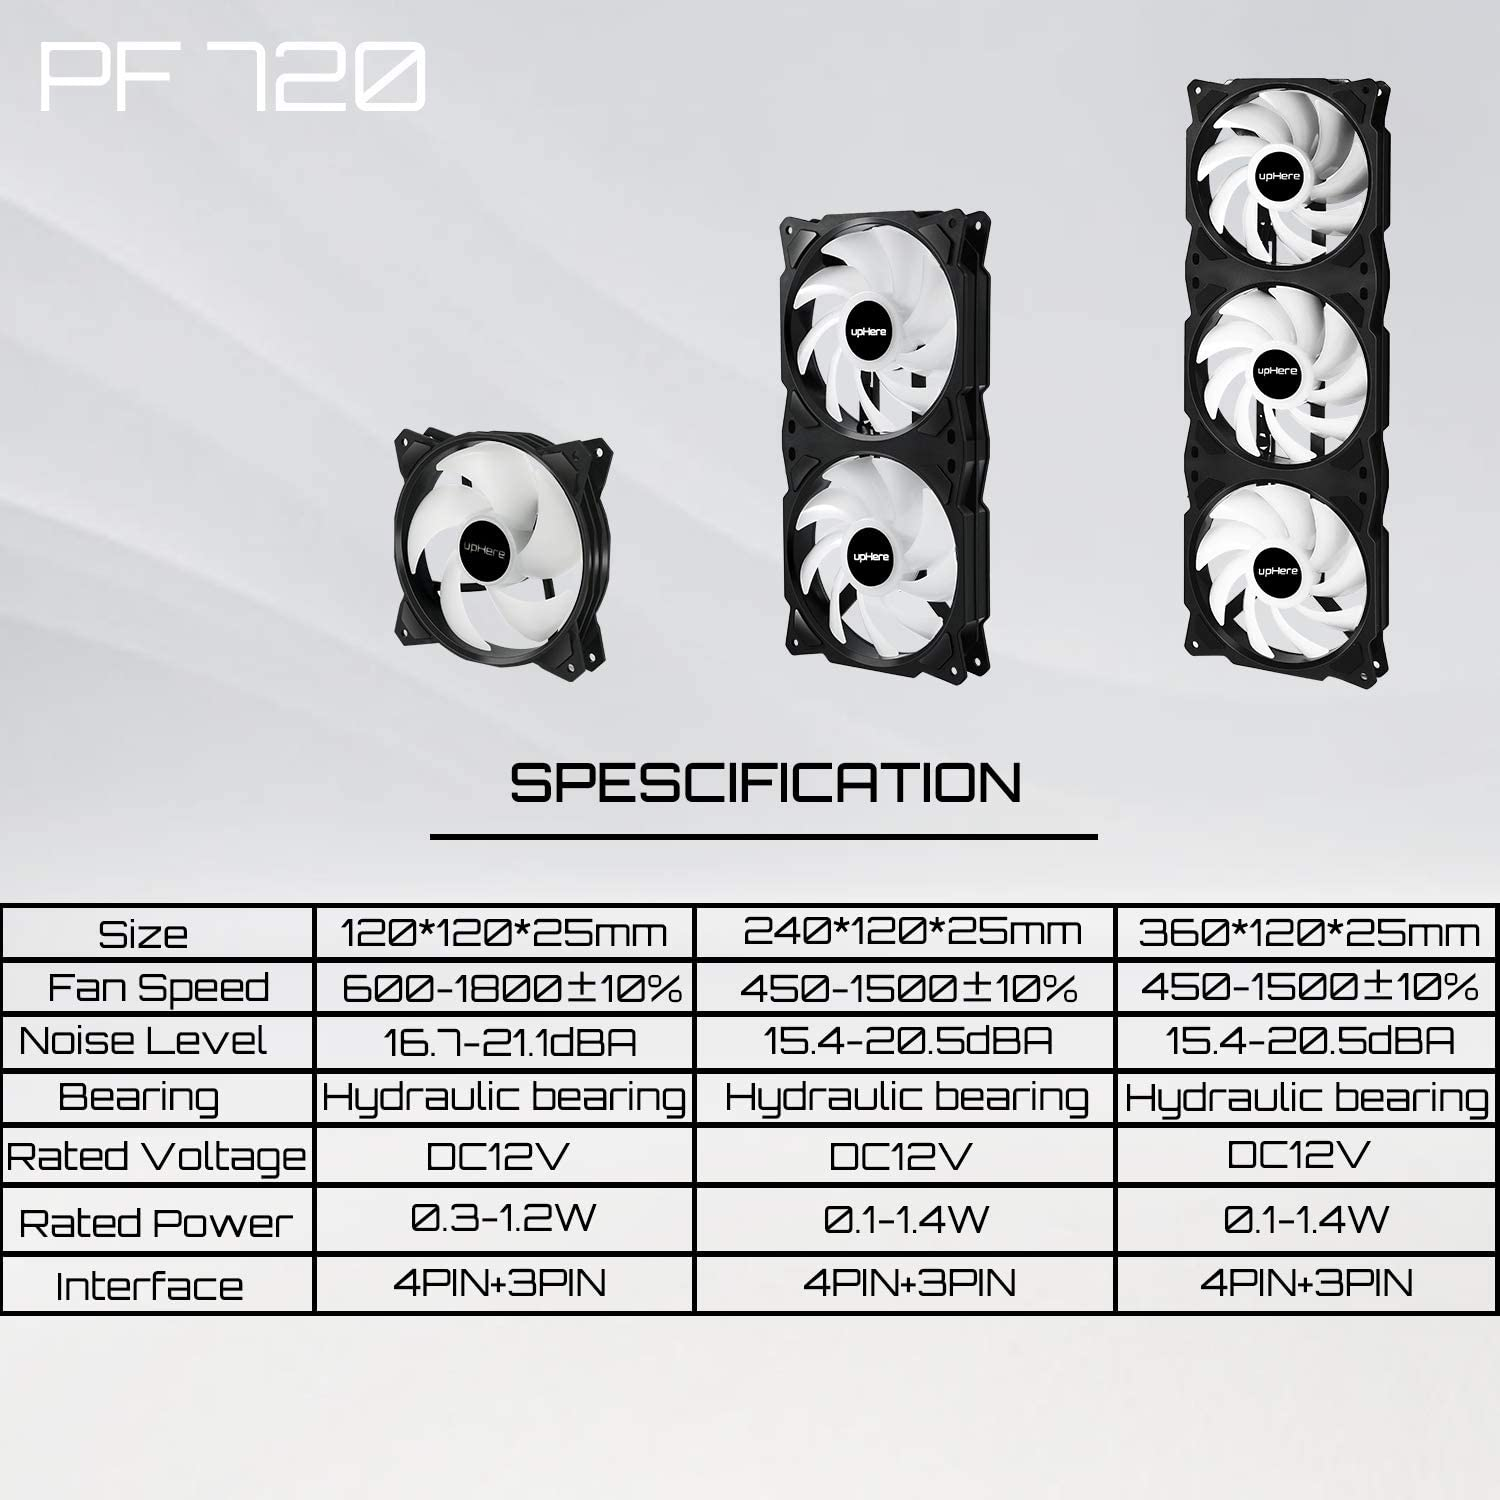 upHere 720mm RGB LED with Remote control PC Cooling Fan Ultra Quiet High Airflow for Computer Case,PF7206